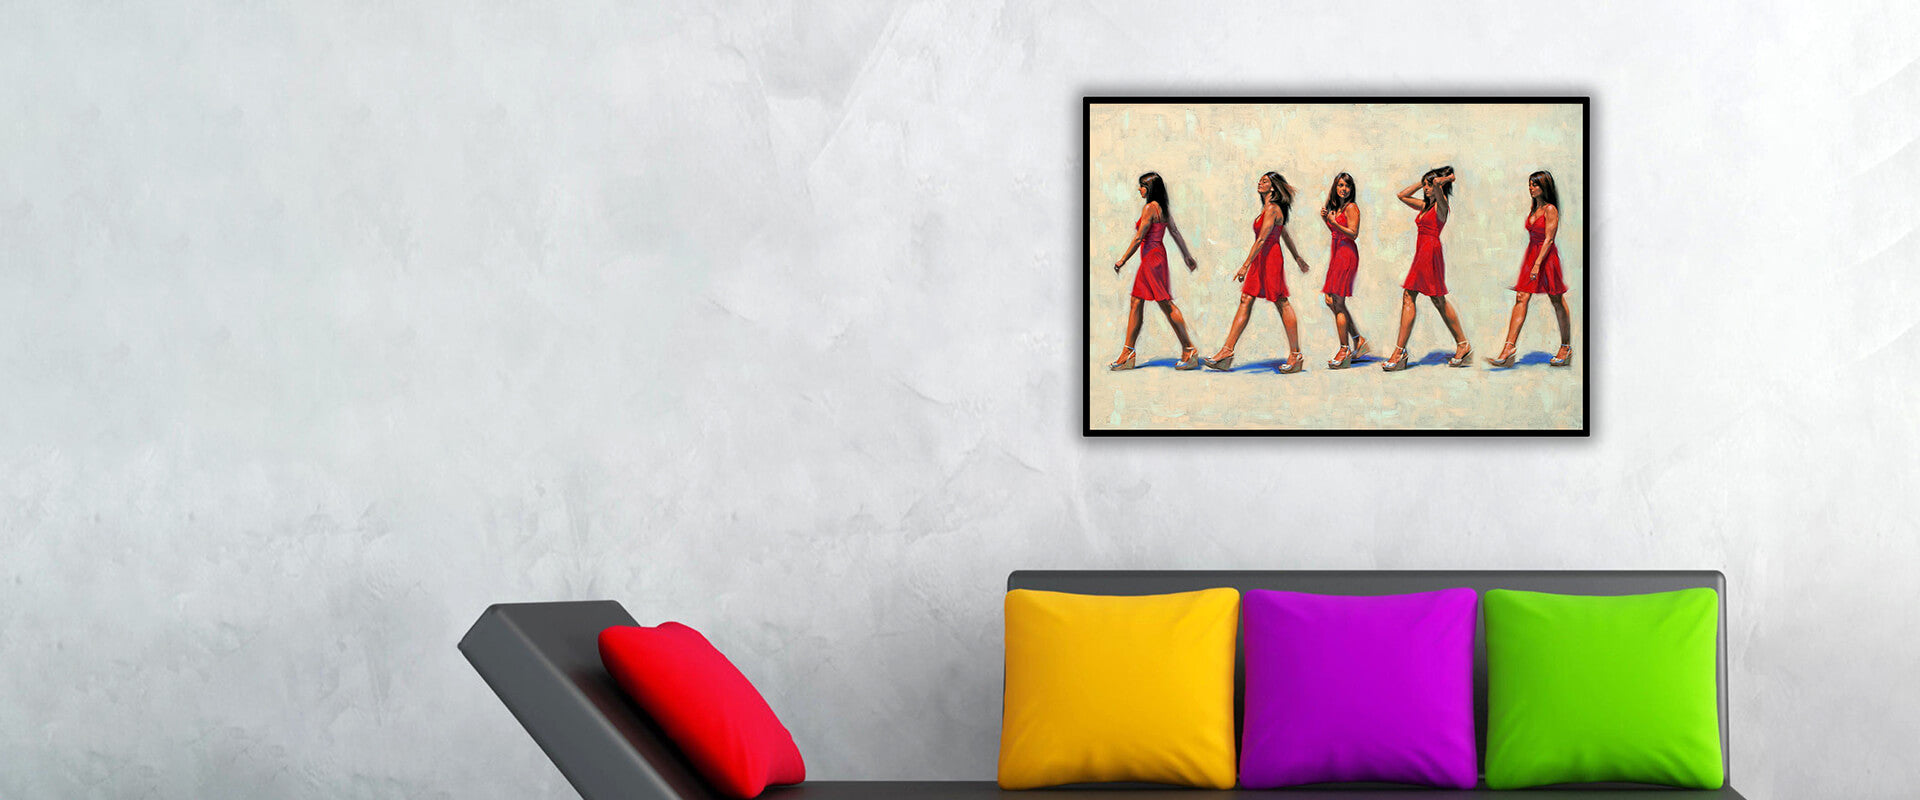 Life Size Posters | Buy Posters, Frames, Canvas, Digital Art & Large Size Prints